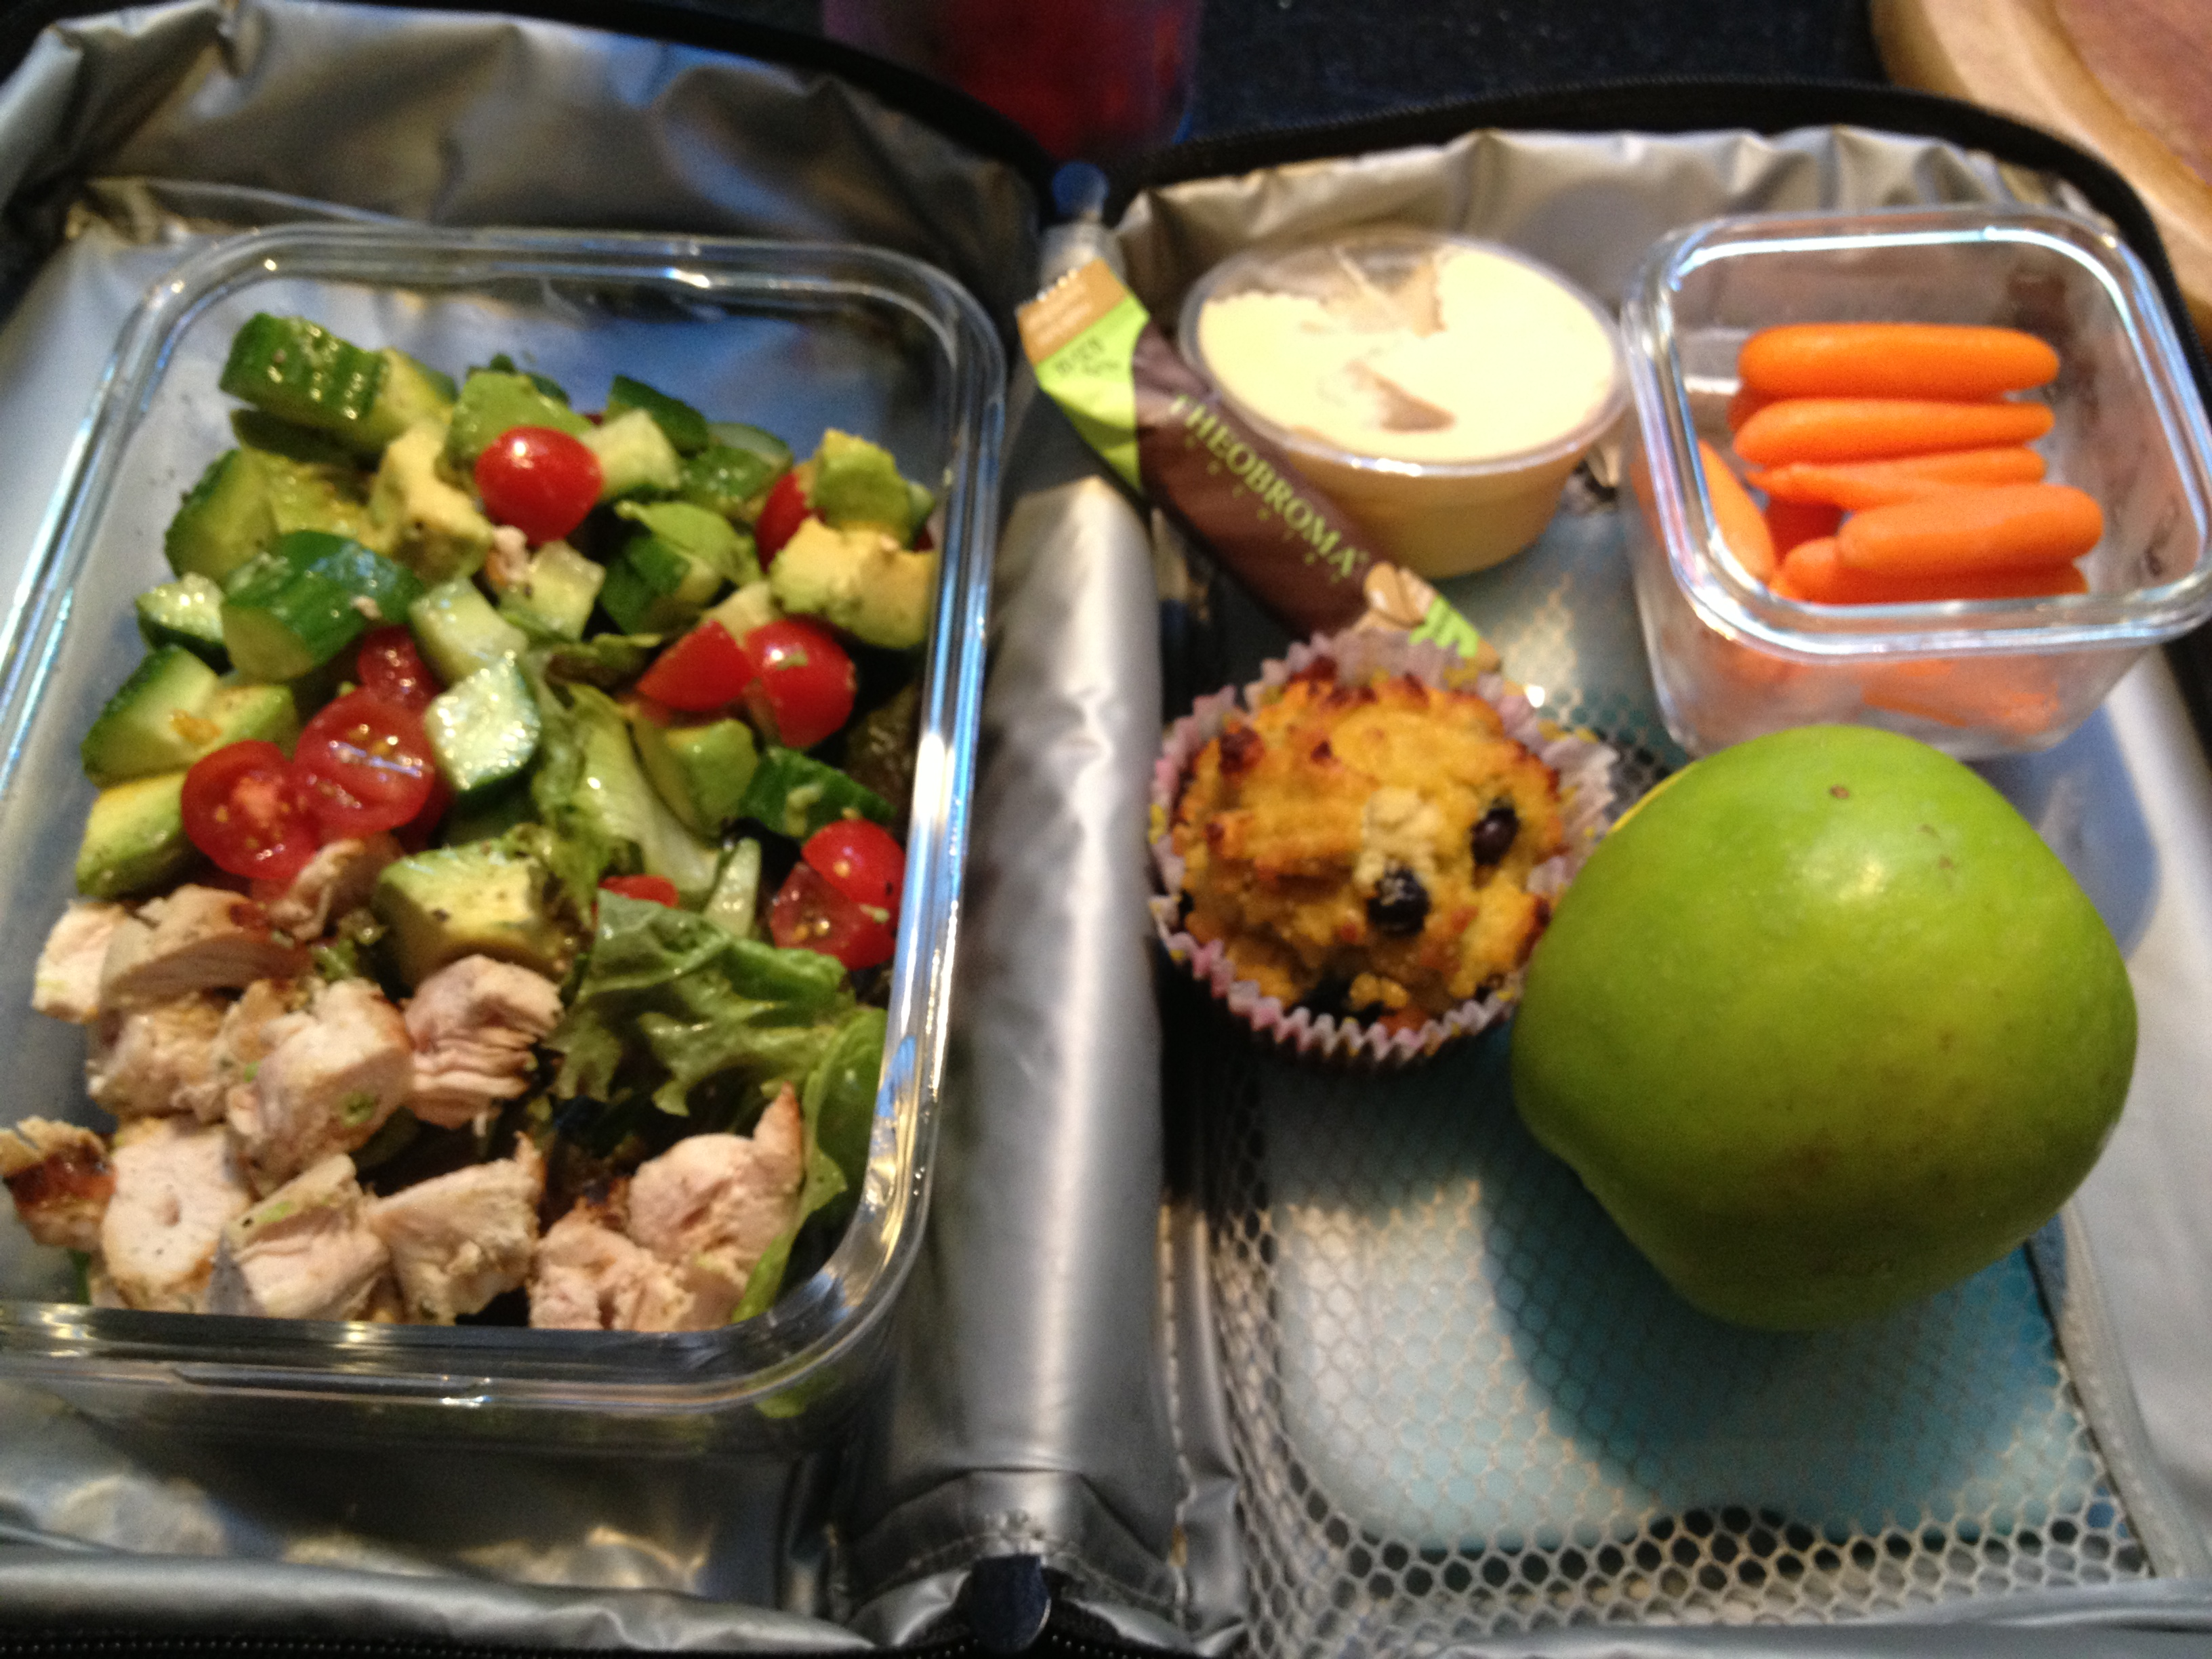 Whole Food Lunching!